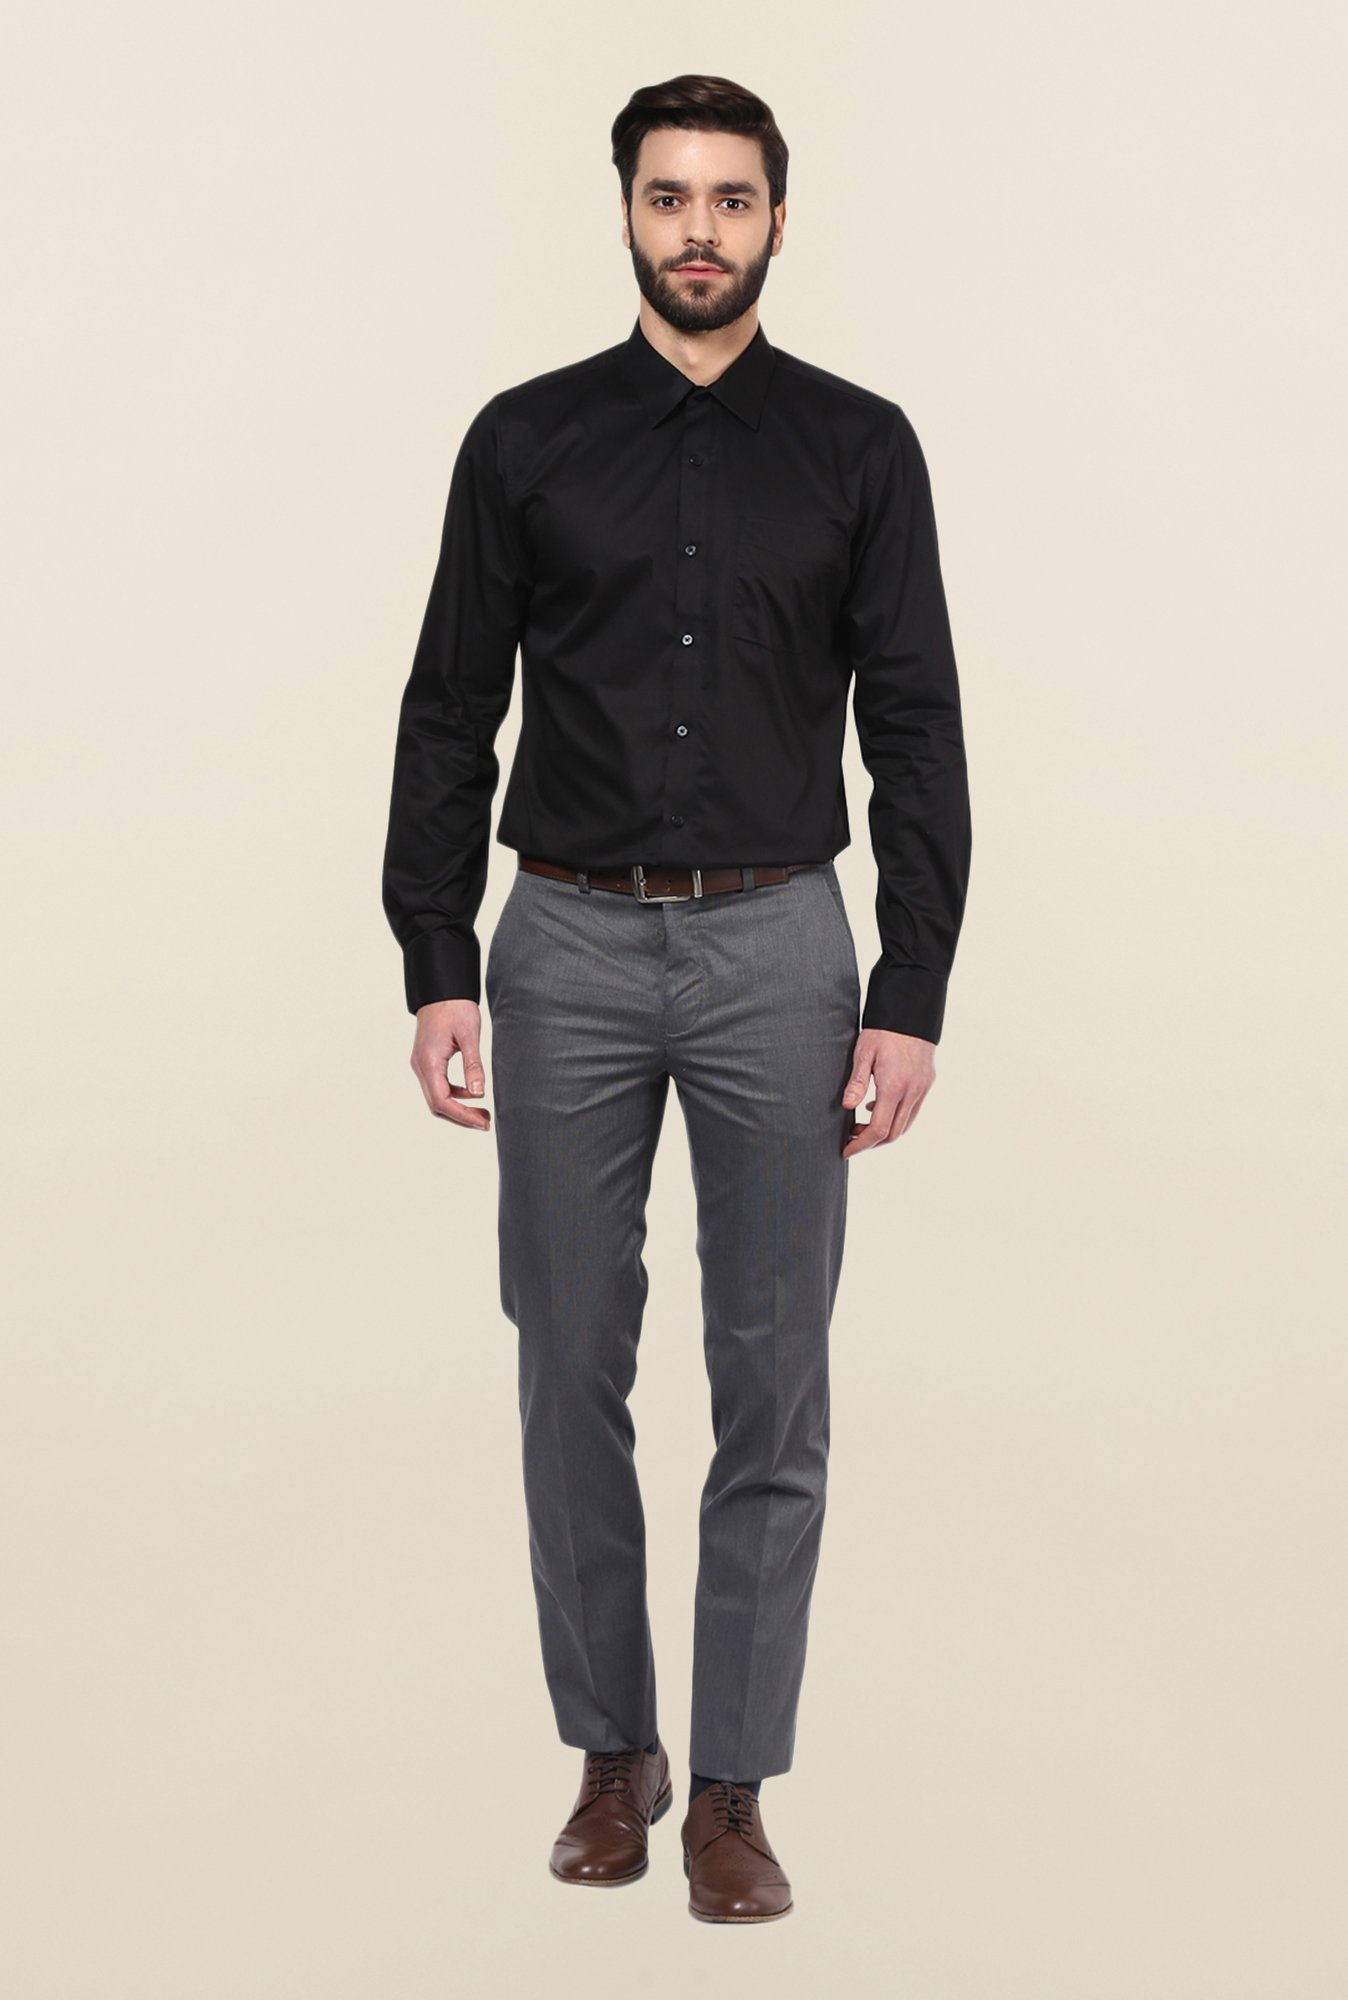 Turtle Black Solid Formal Shirt